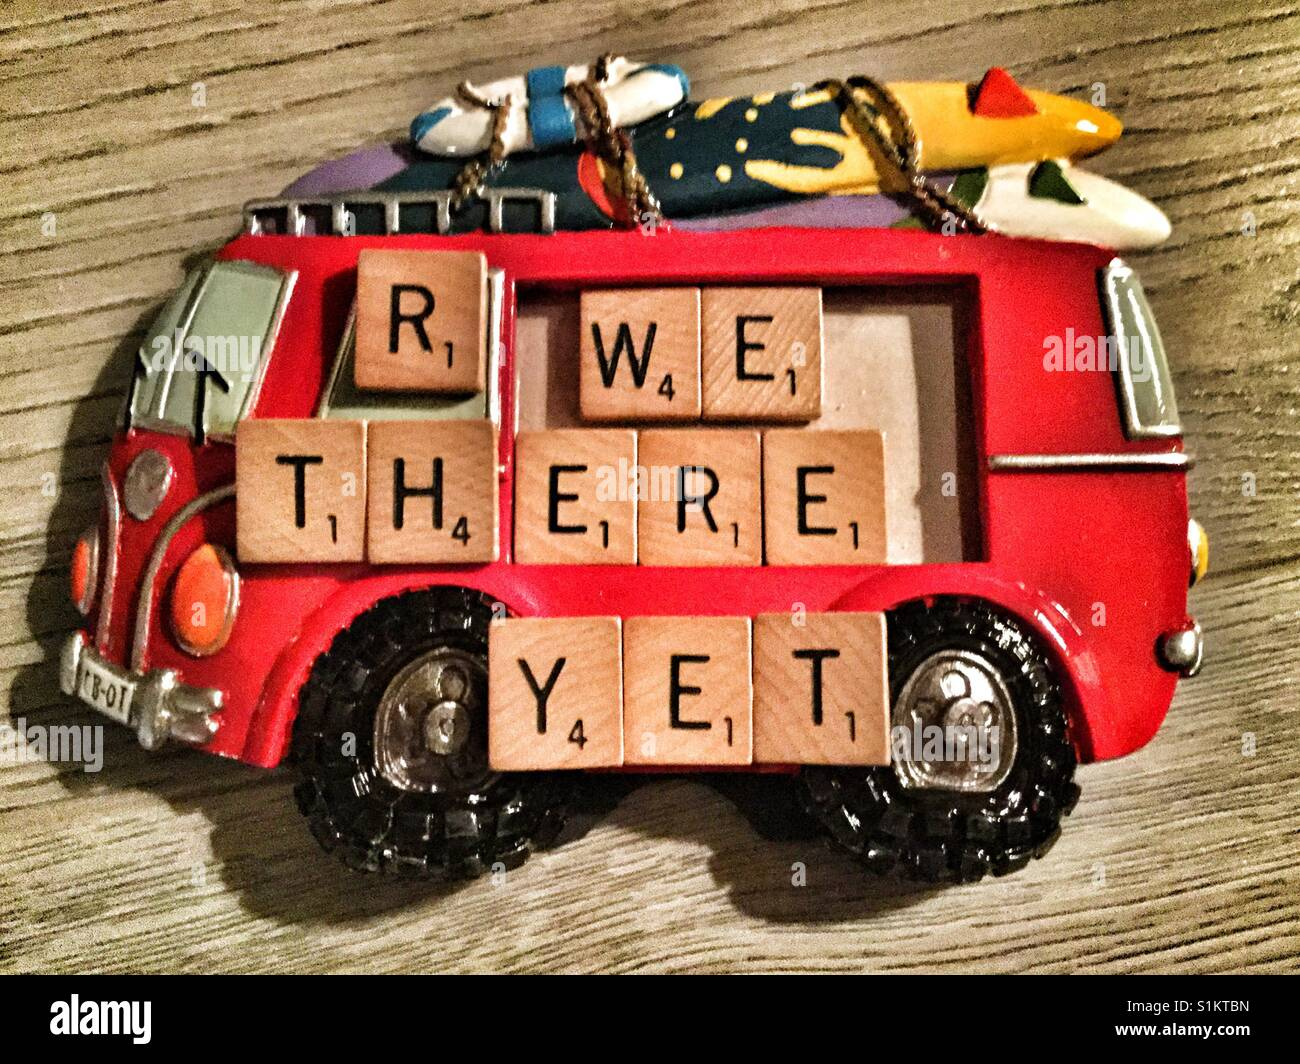 Are we there yet, written on a VW van picture frame. - Stock Image